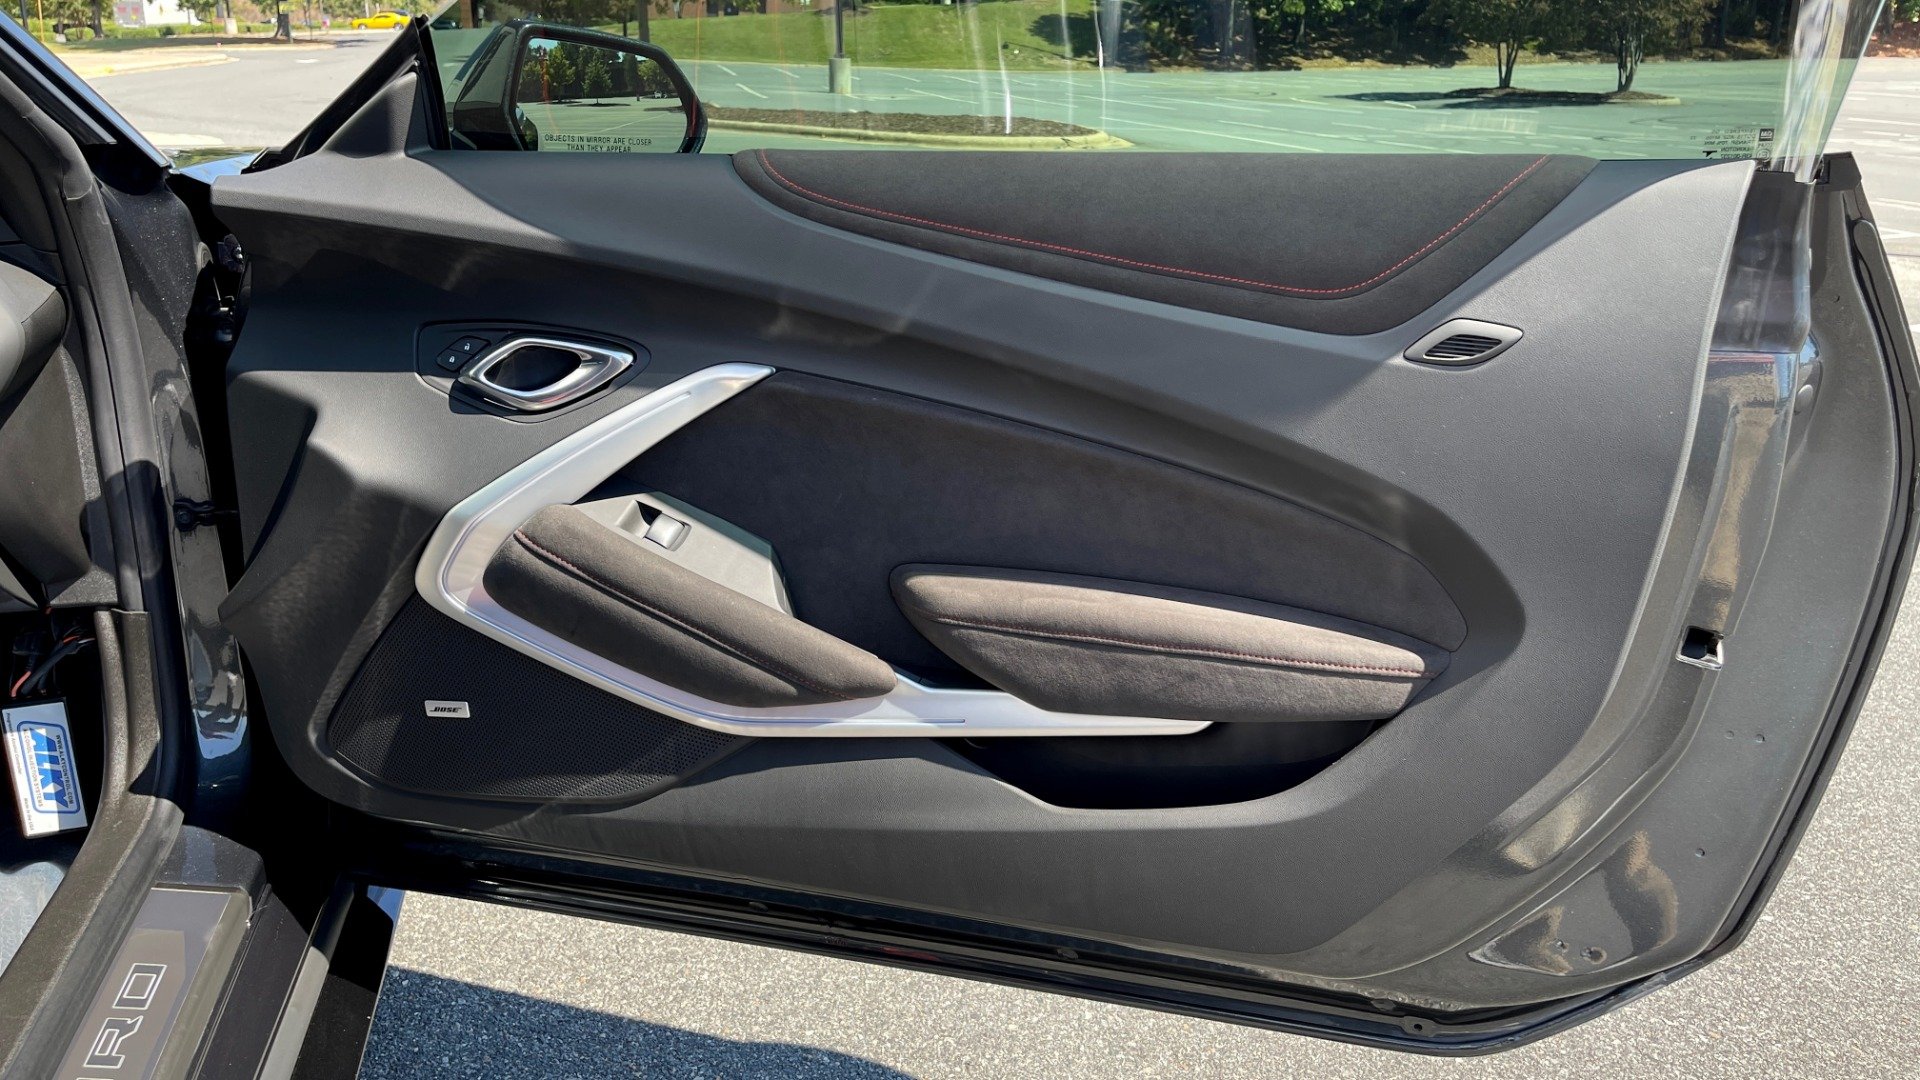 Used 2018 Chevrolet CAMARO ZL1 SUPERCHARGED COUPE 850HP / 10-SPD AUTO / NAV / BOSE / REARVIEW for sale $59,995 at Formula Imports in Charlotte NC 28227 52